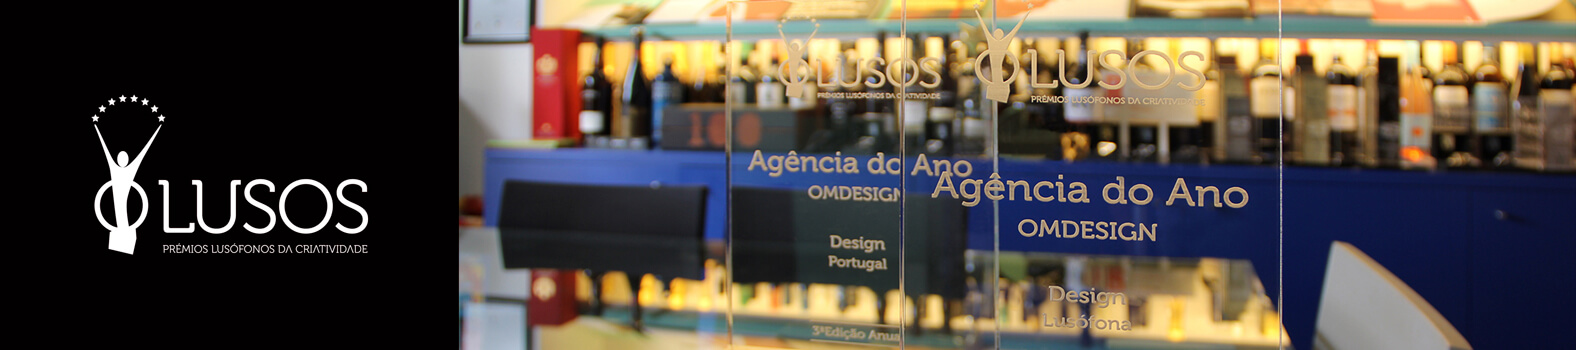 Omdesign is the Lusophone Agency of the Year